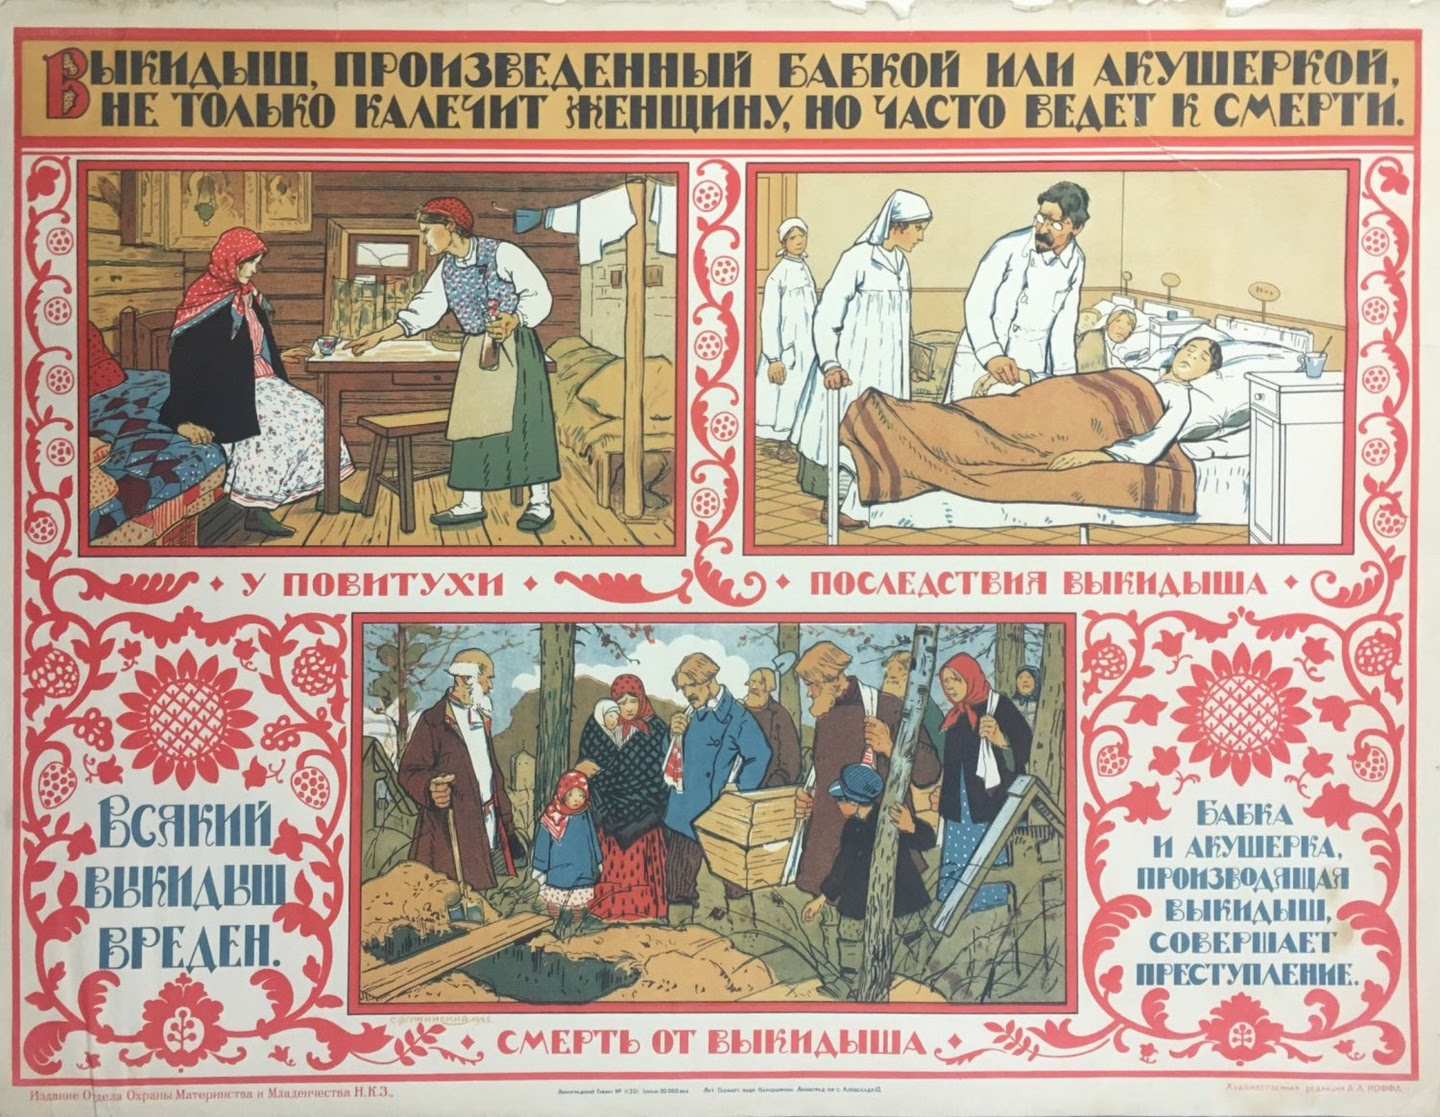 File:RussianAbortionPoster.jpg